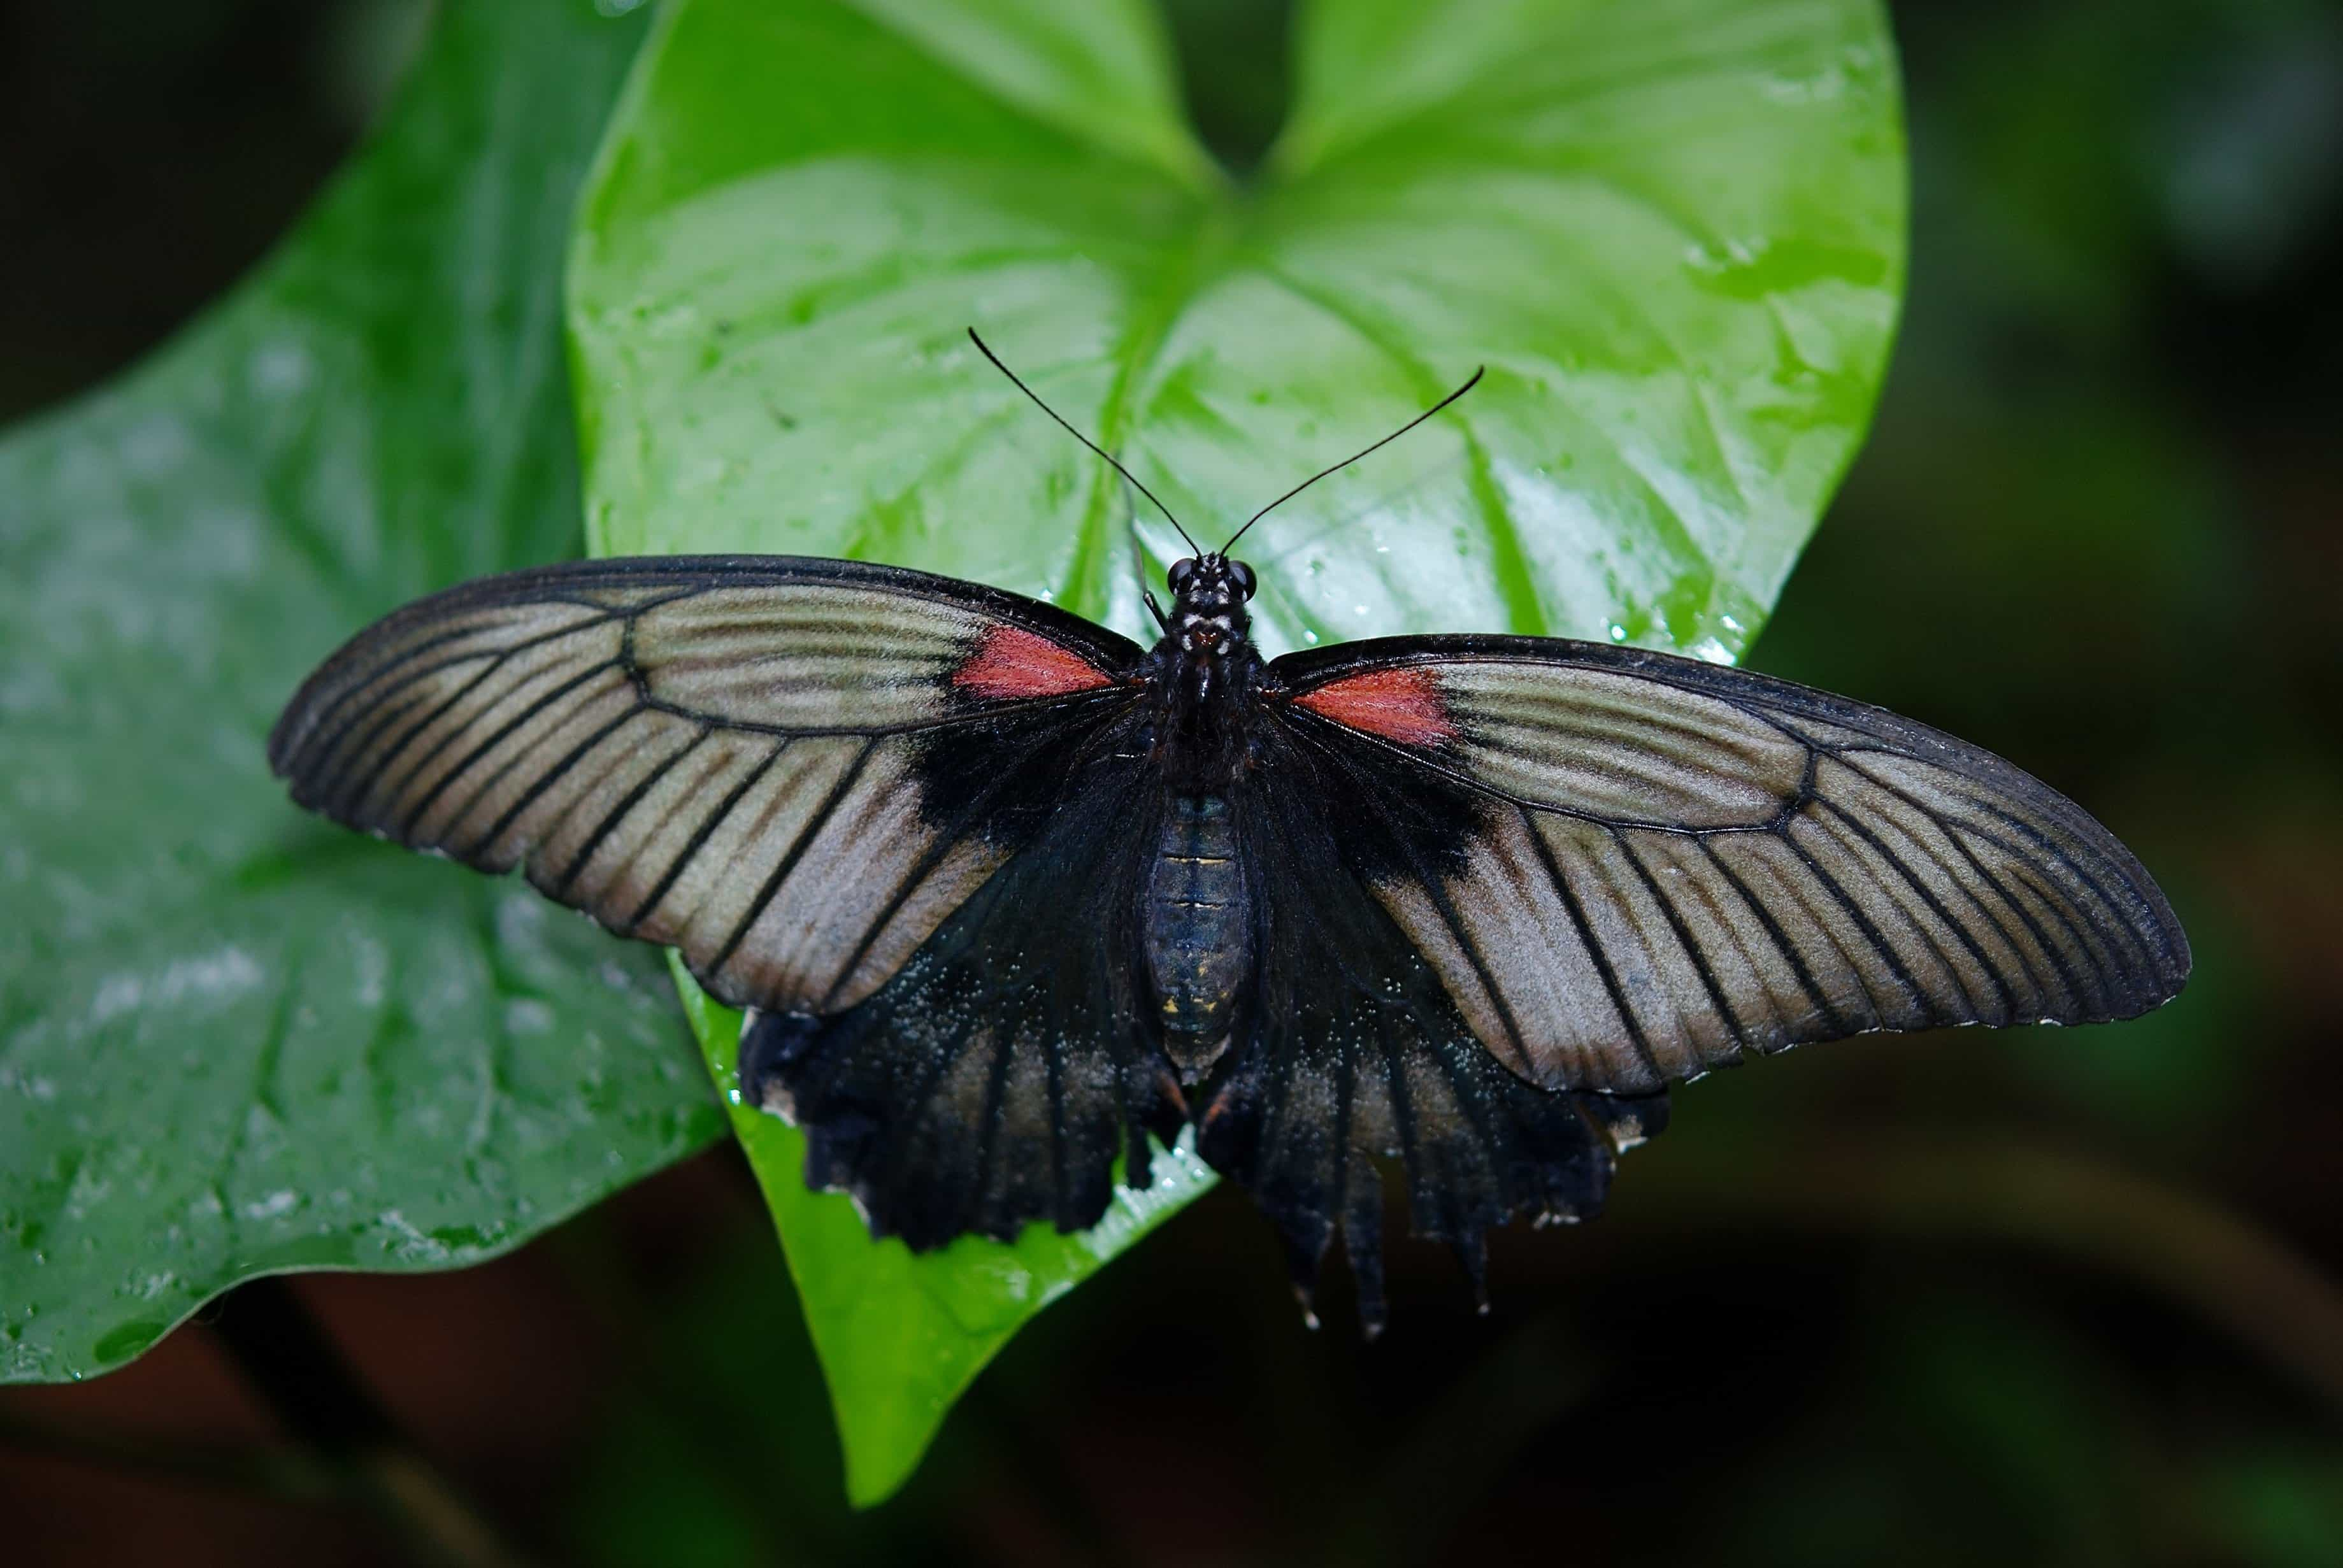 Free Picture Insect Biology Nature Wildlife Black Butterfly Invertebrate Macro